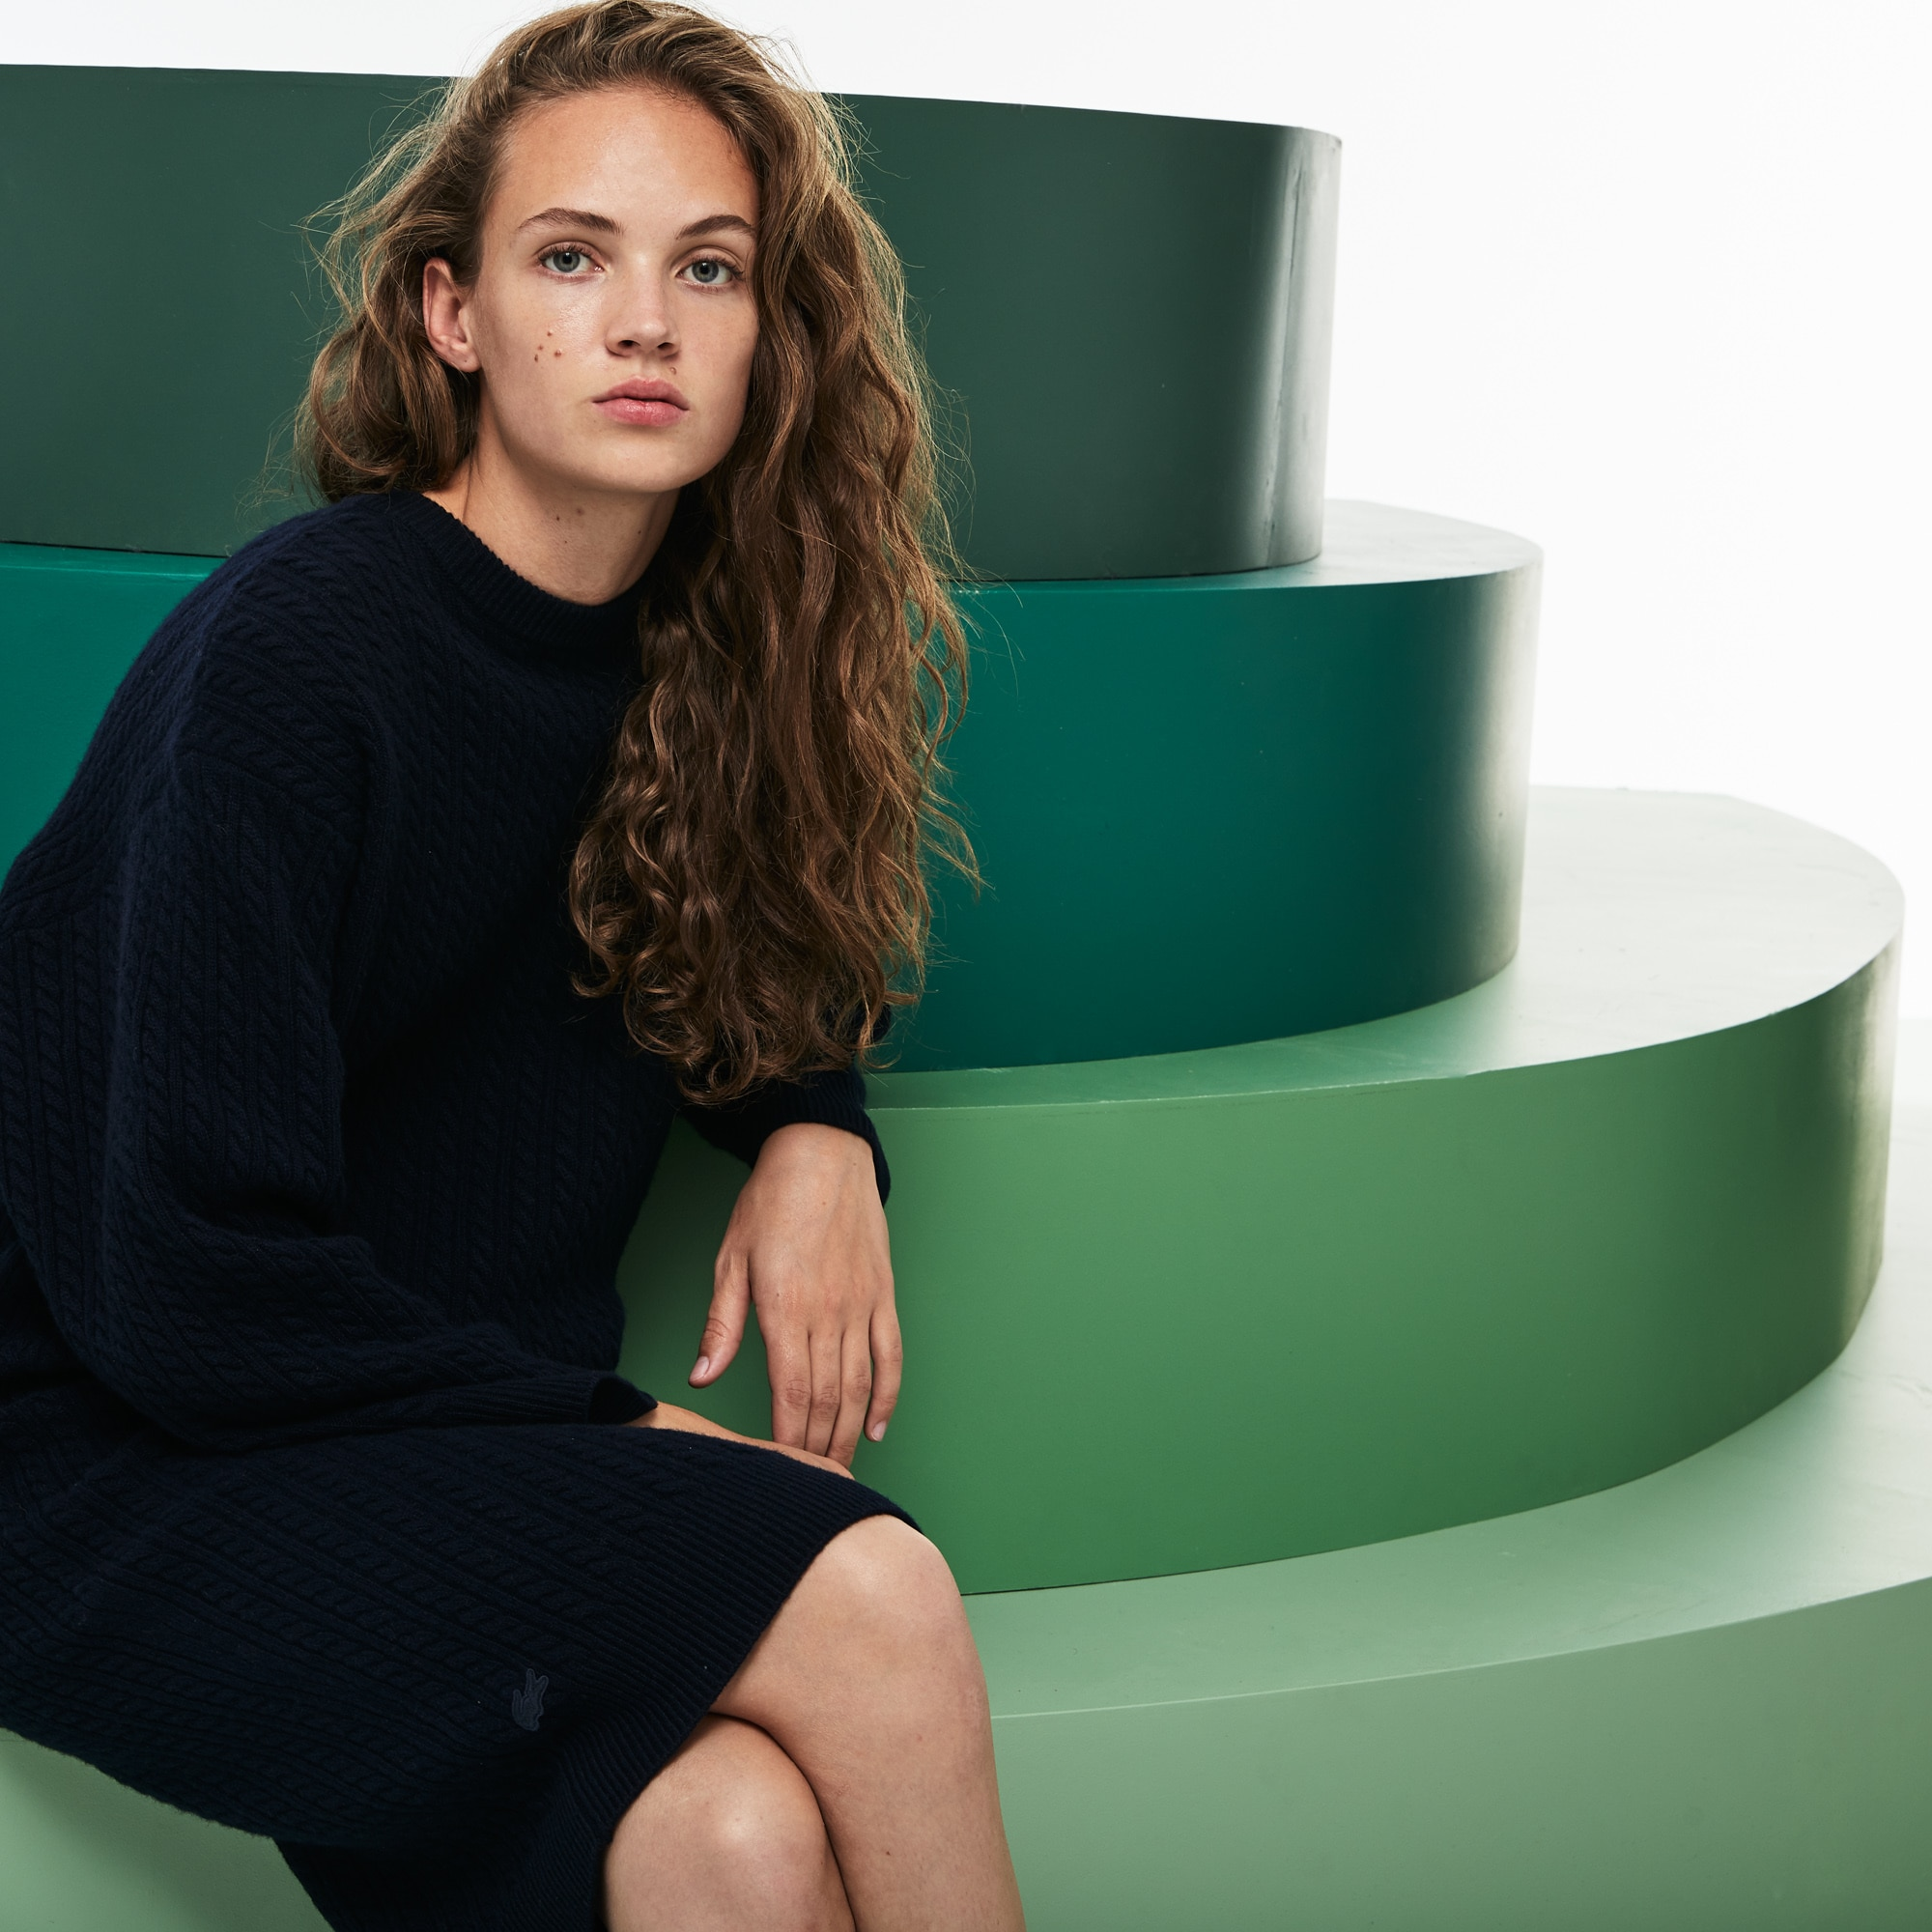 Women's Fashion Show Oversized Wool And Cashmere Sweater Dress